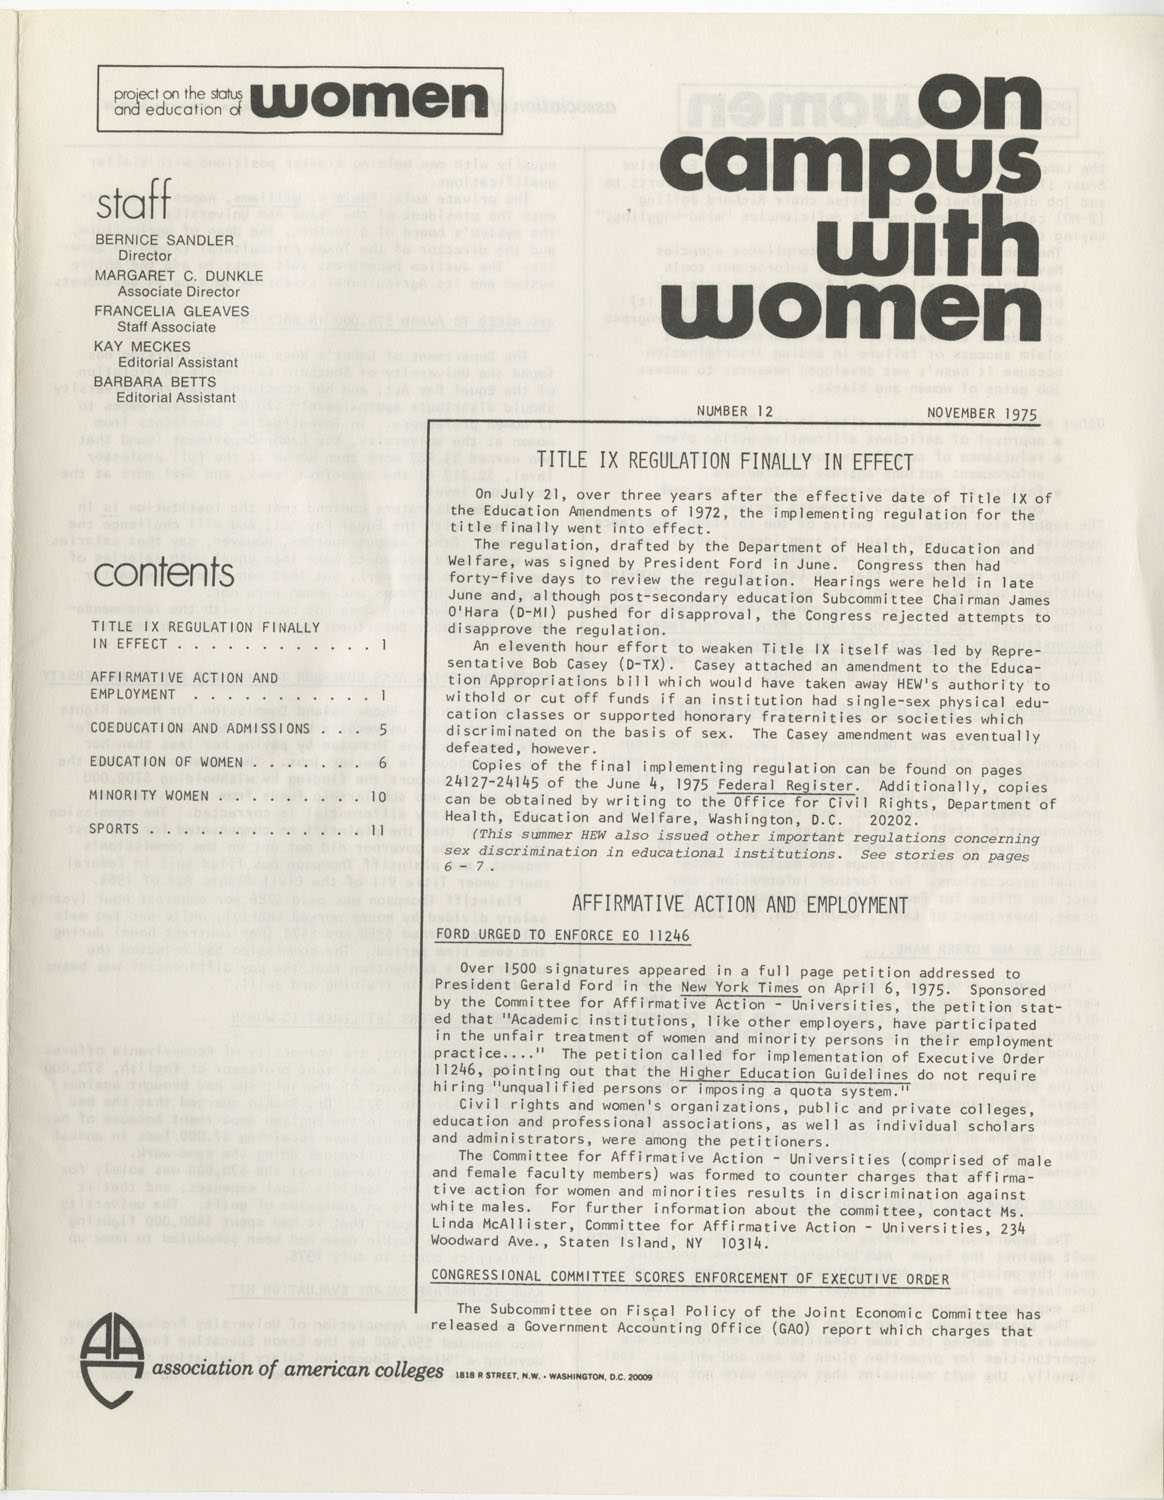 On Campus With Women, Association of American Colleges, November 1975